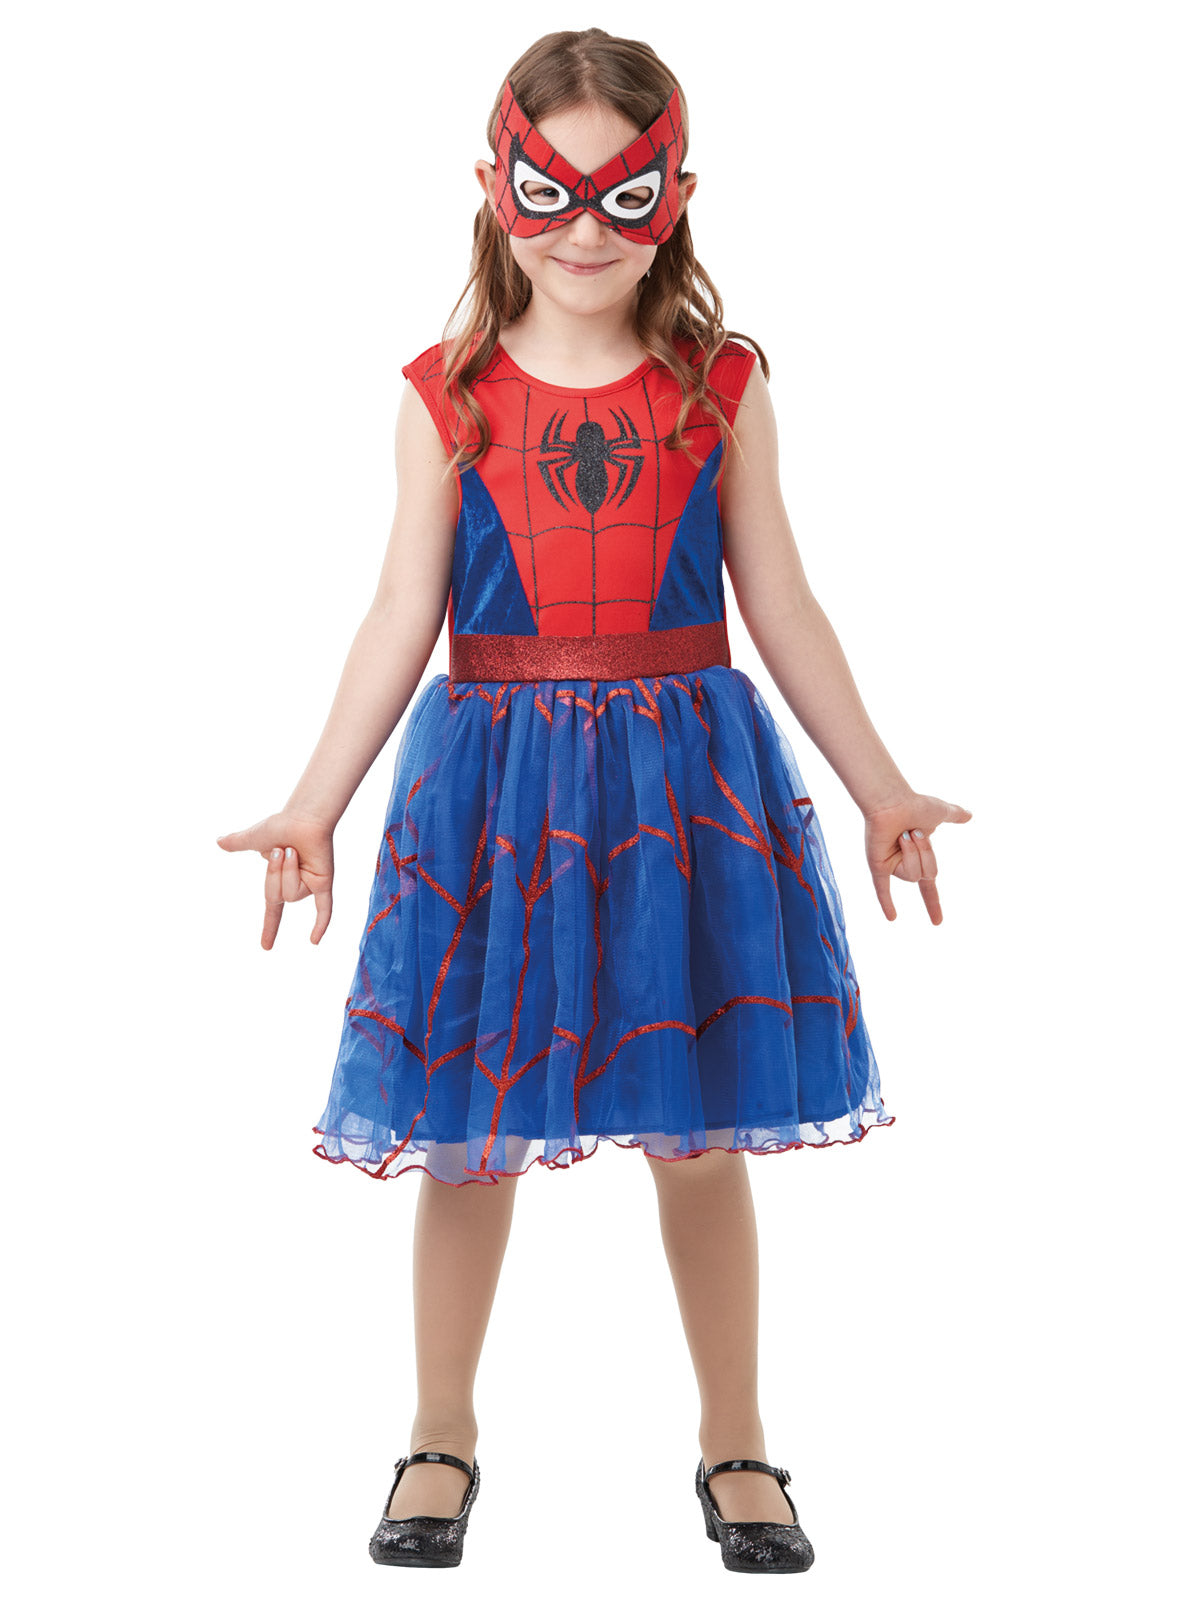 Spider-Girl Deluxe Tutu Costume Child - Buy Online Only